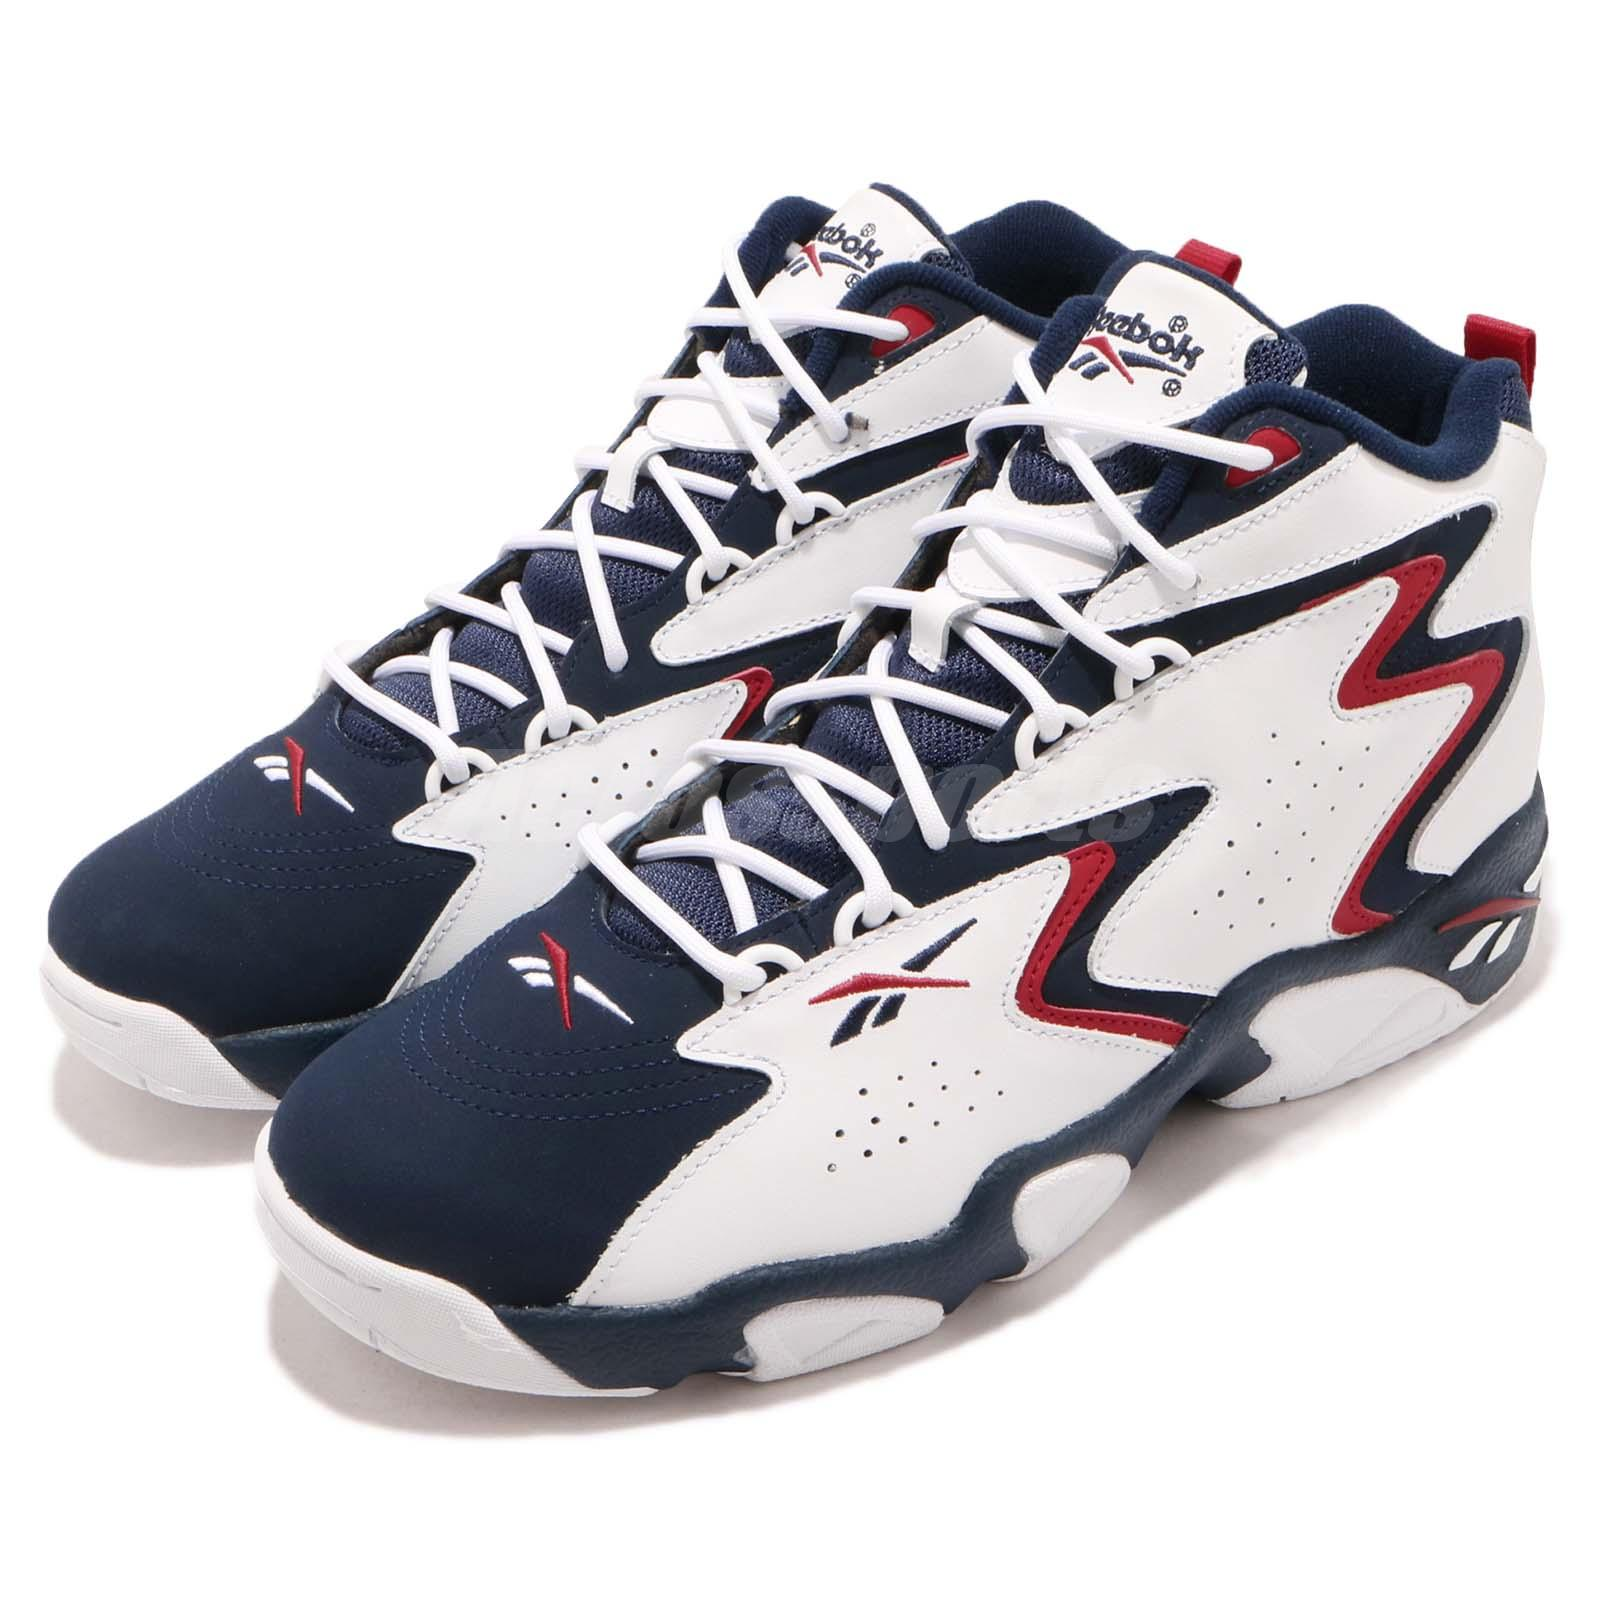 Details about Reebok Mobius OG MU White Navy Red Men Basketball Casual Shoes  Sneakers CN7885 d80e2c932